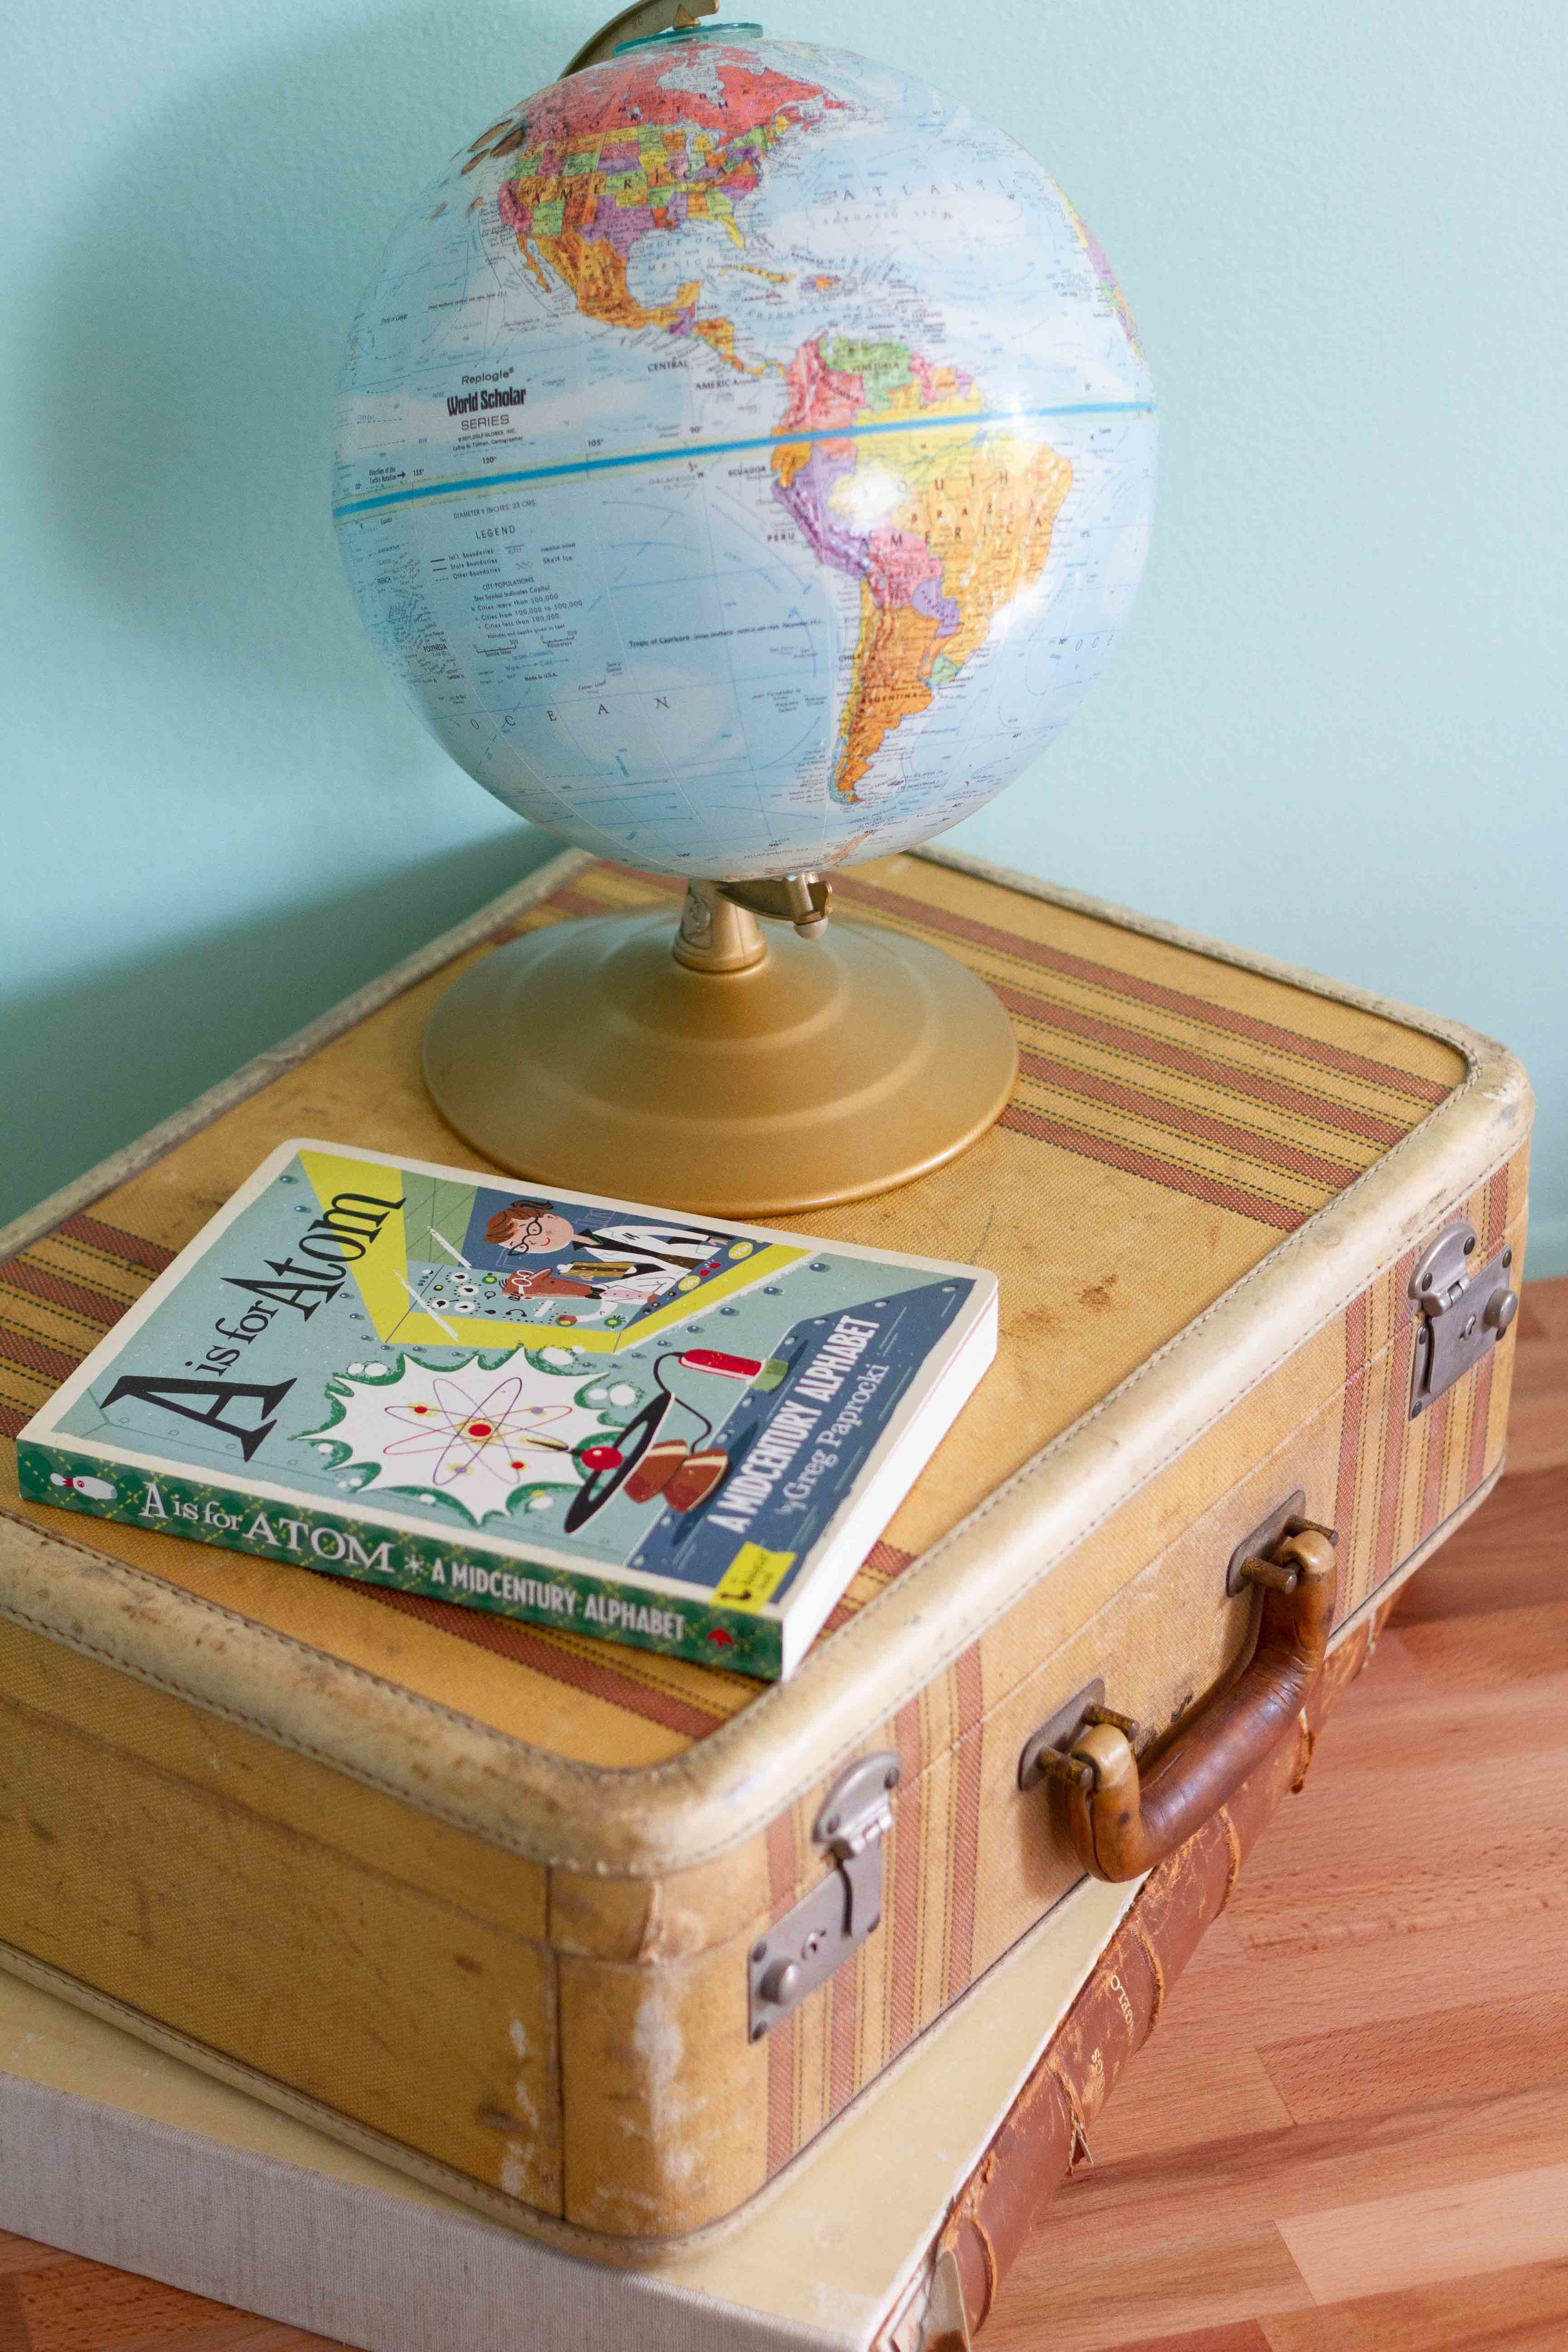 A midcentury alphabet book? Yes, please! Perfect atop my grandfather's suitcase.